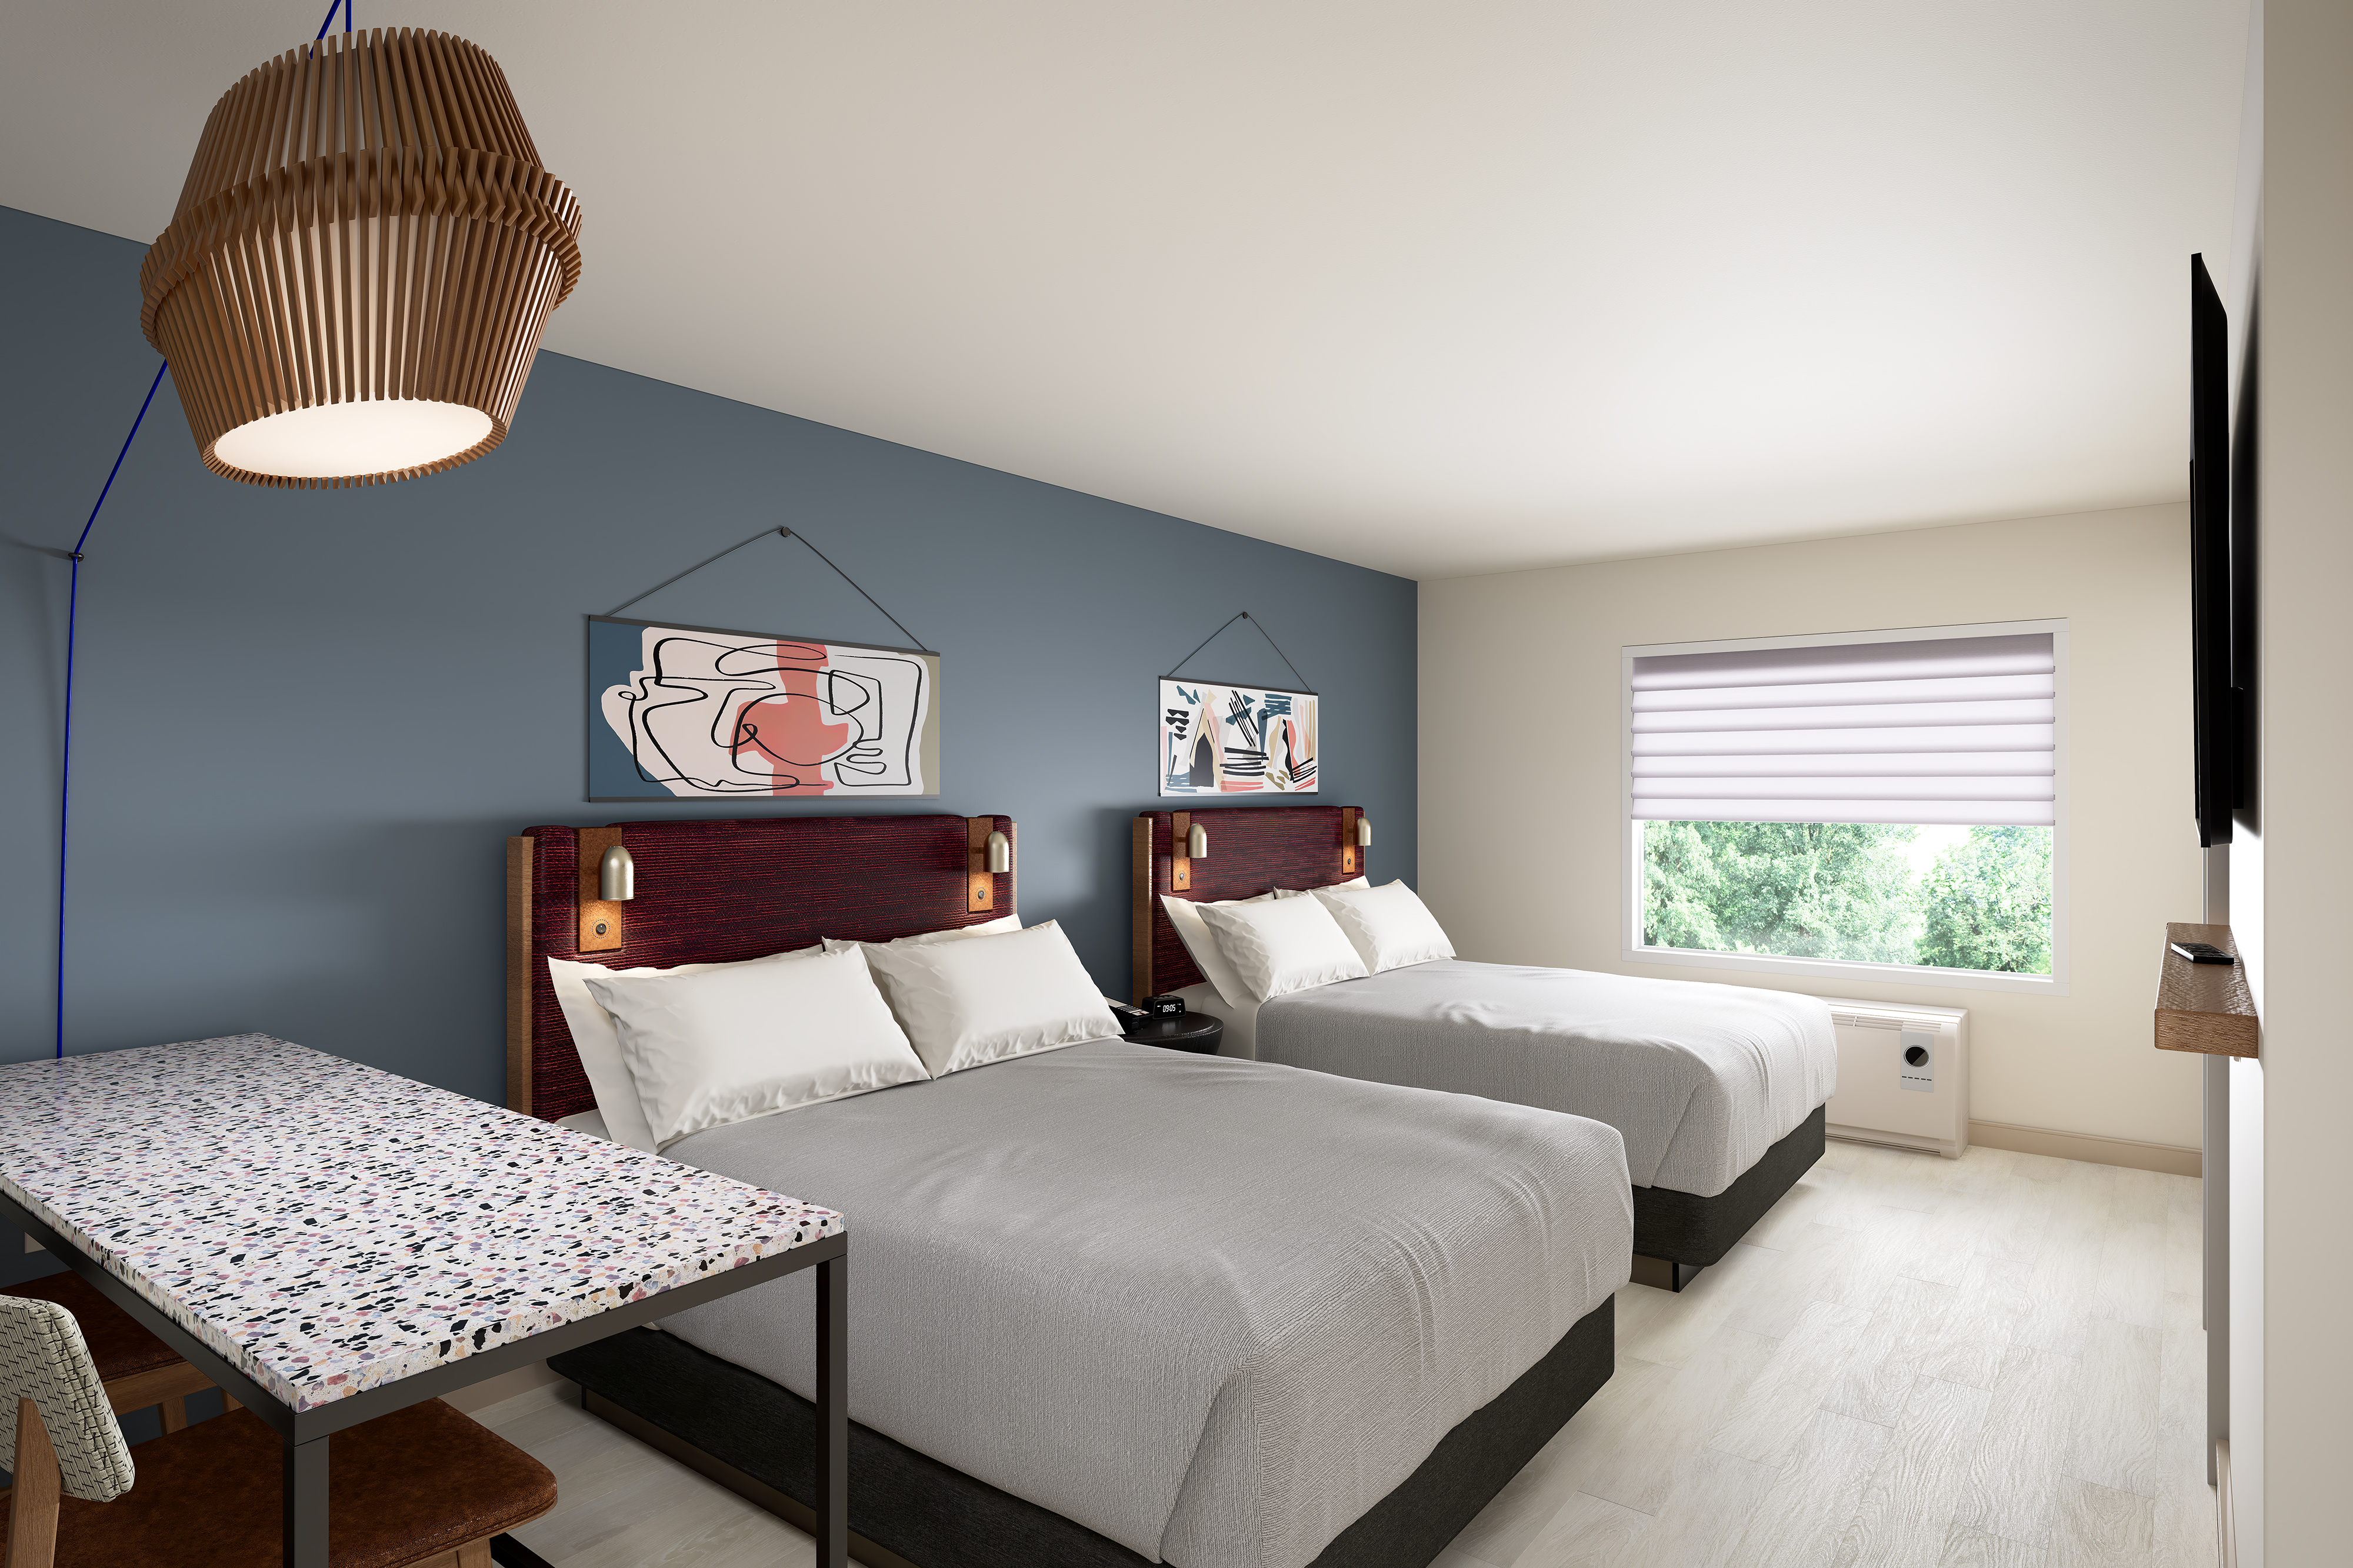 Rooms with two queen beds will cover 409 square feet.